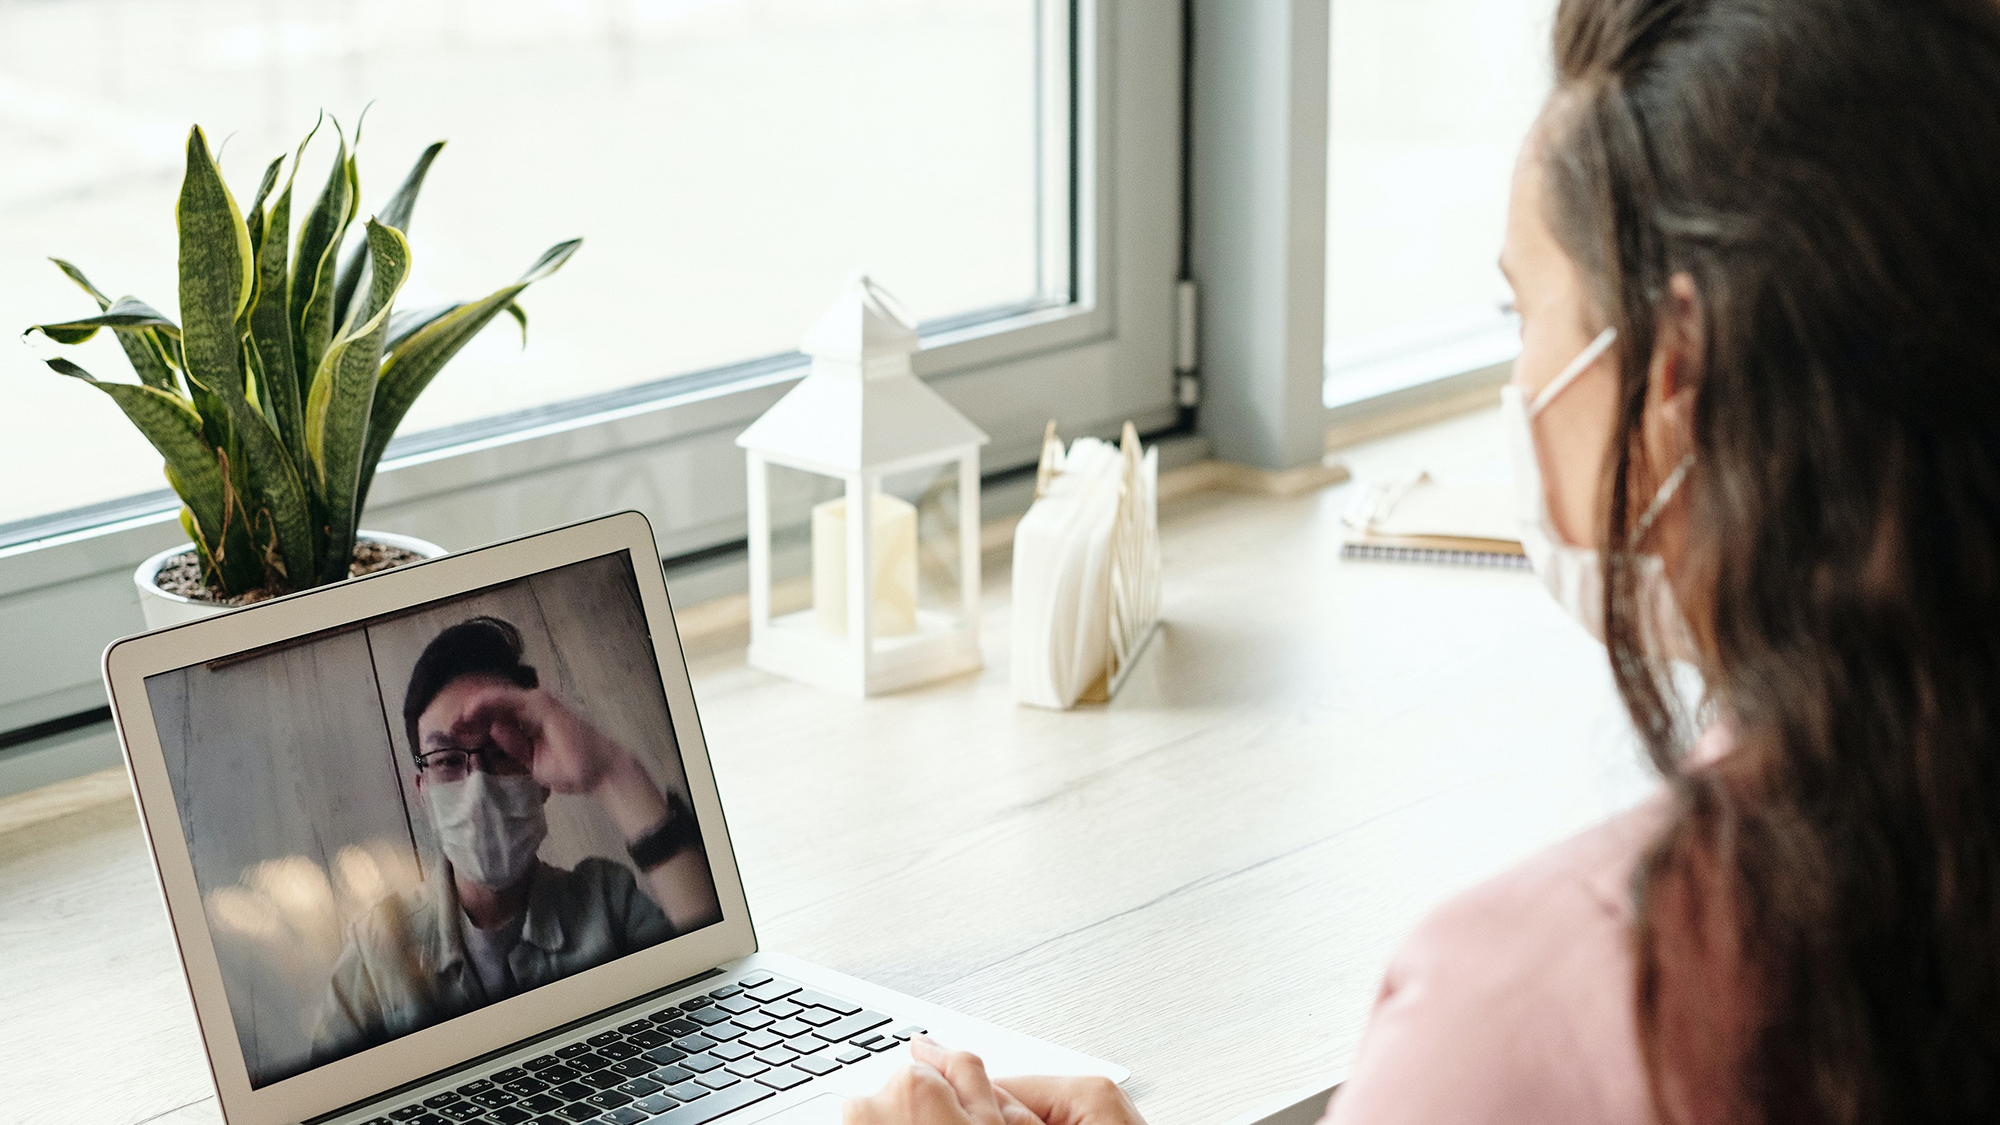 Woman on her laptop, wearing a mask, and video chatting with a man also wearing a mask